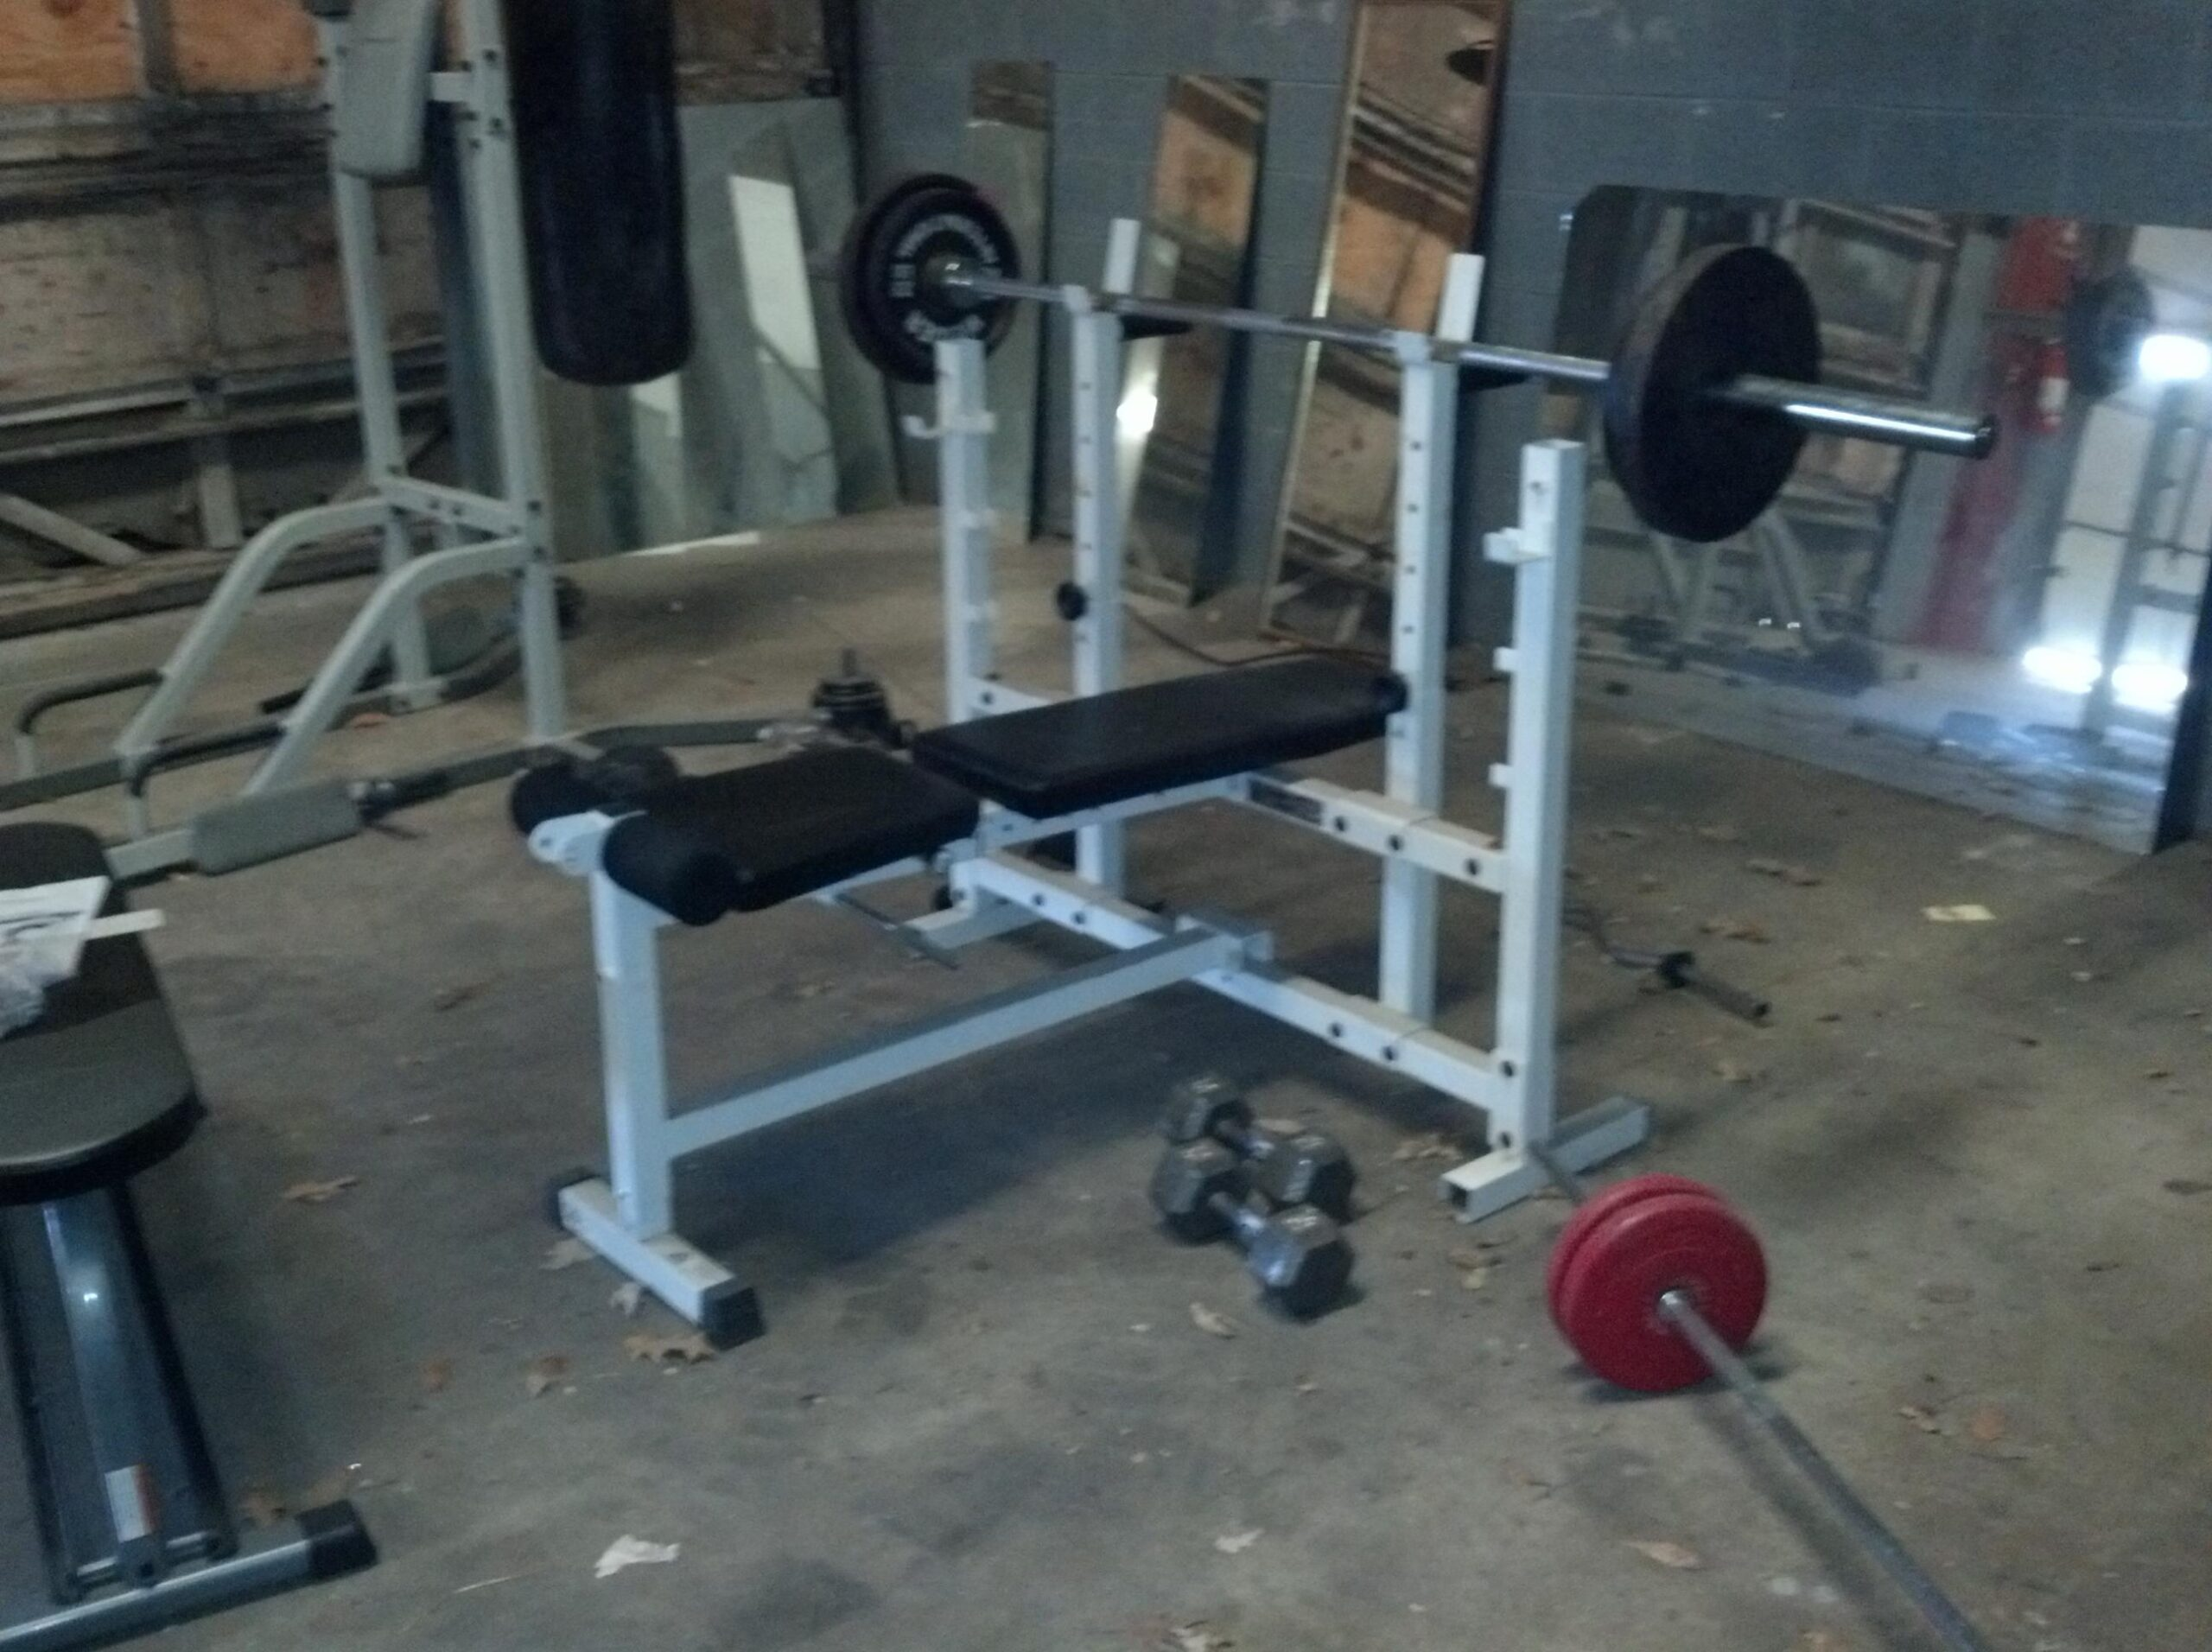 a picture of a used weight bench